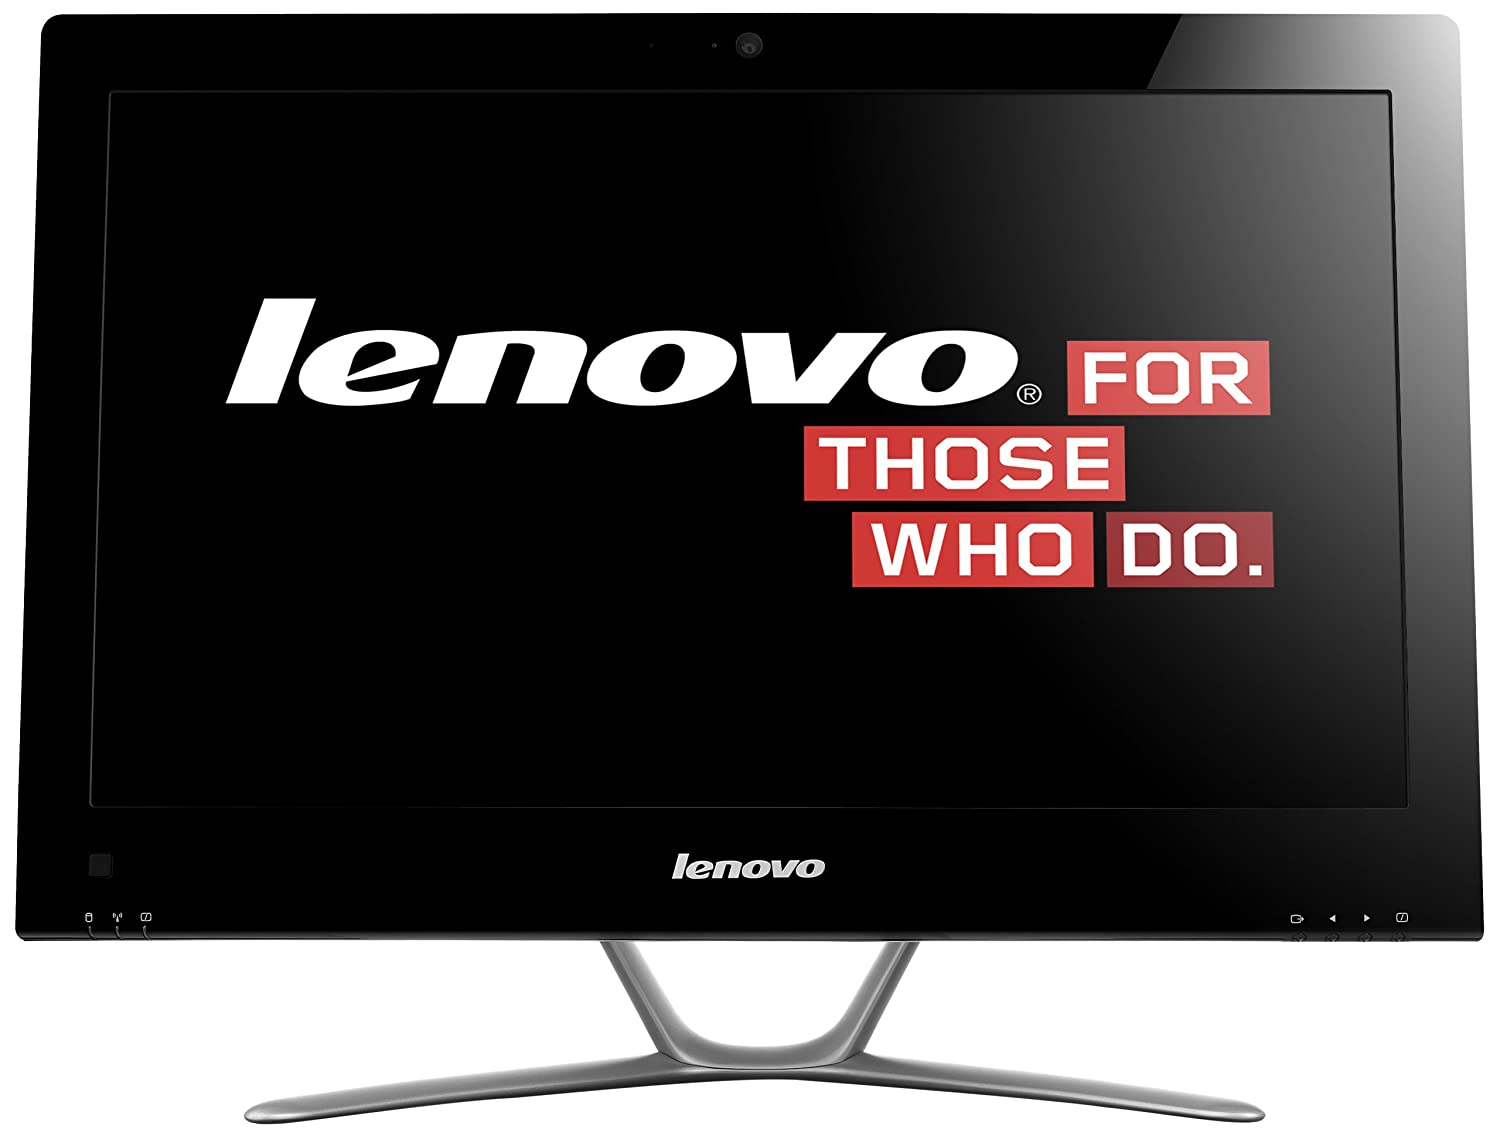 Lenovo 57315585 C440 21.5-Inch All-In-One Desktop